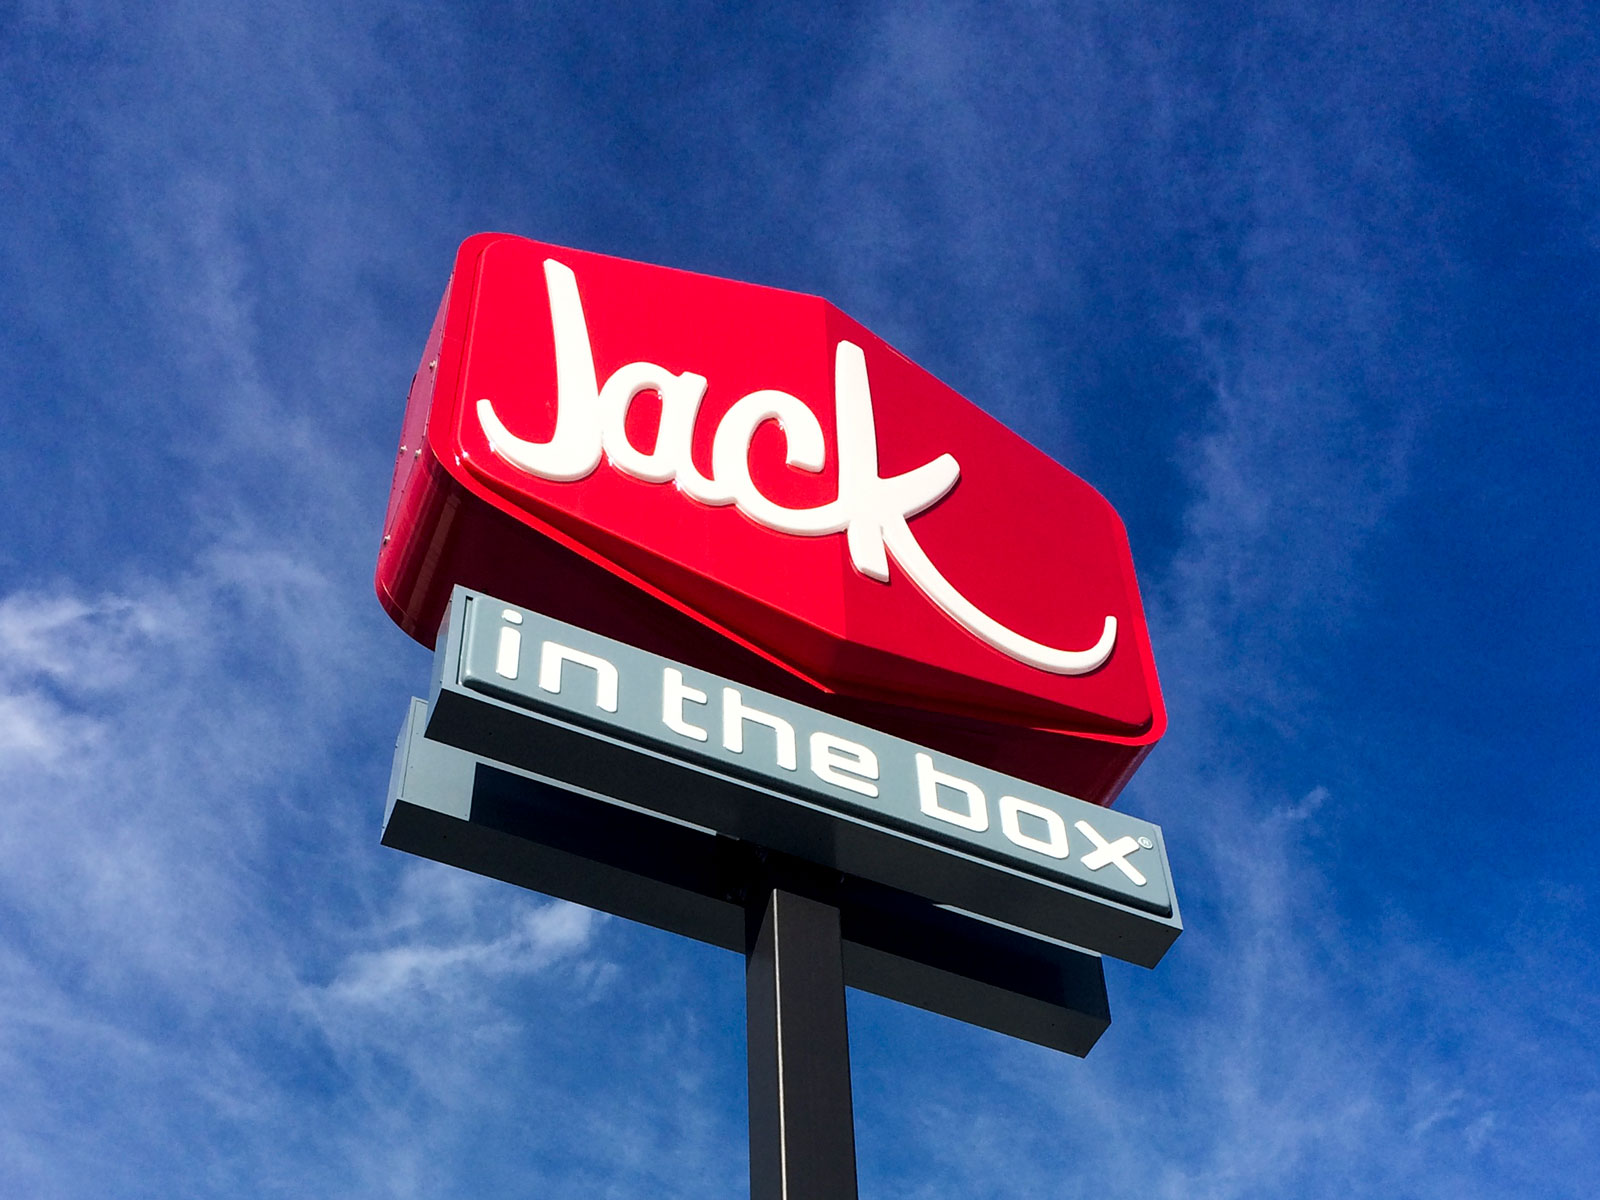 jack-in-the-box-burger-dippers-FT-BLOG0219.jpg